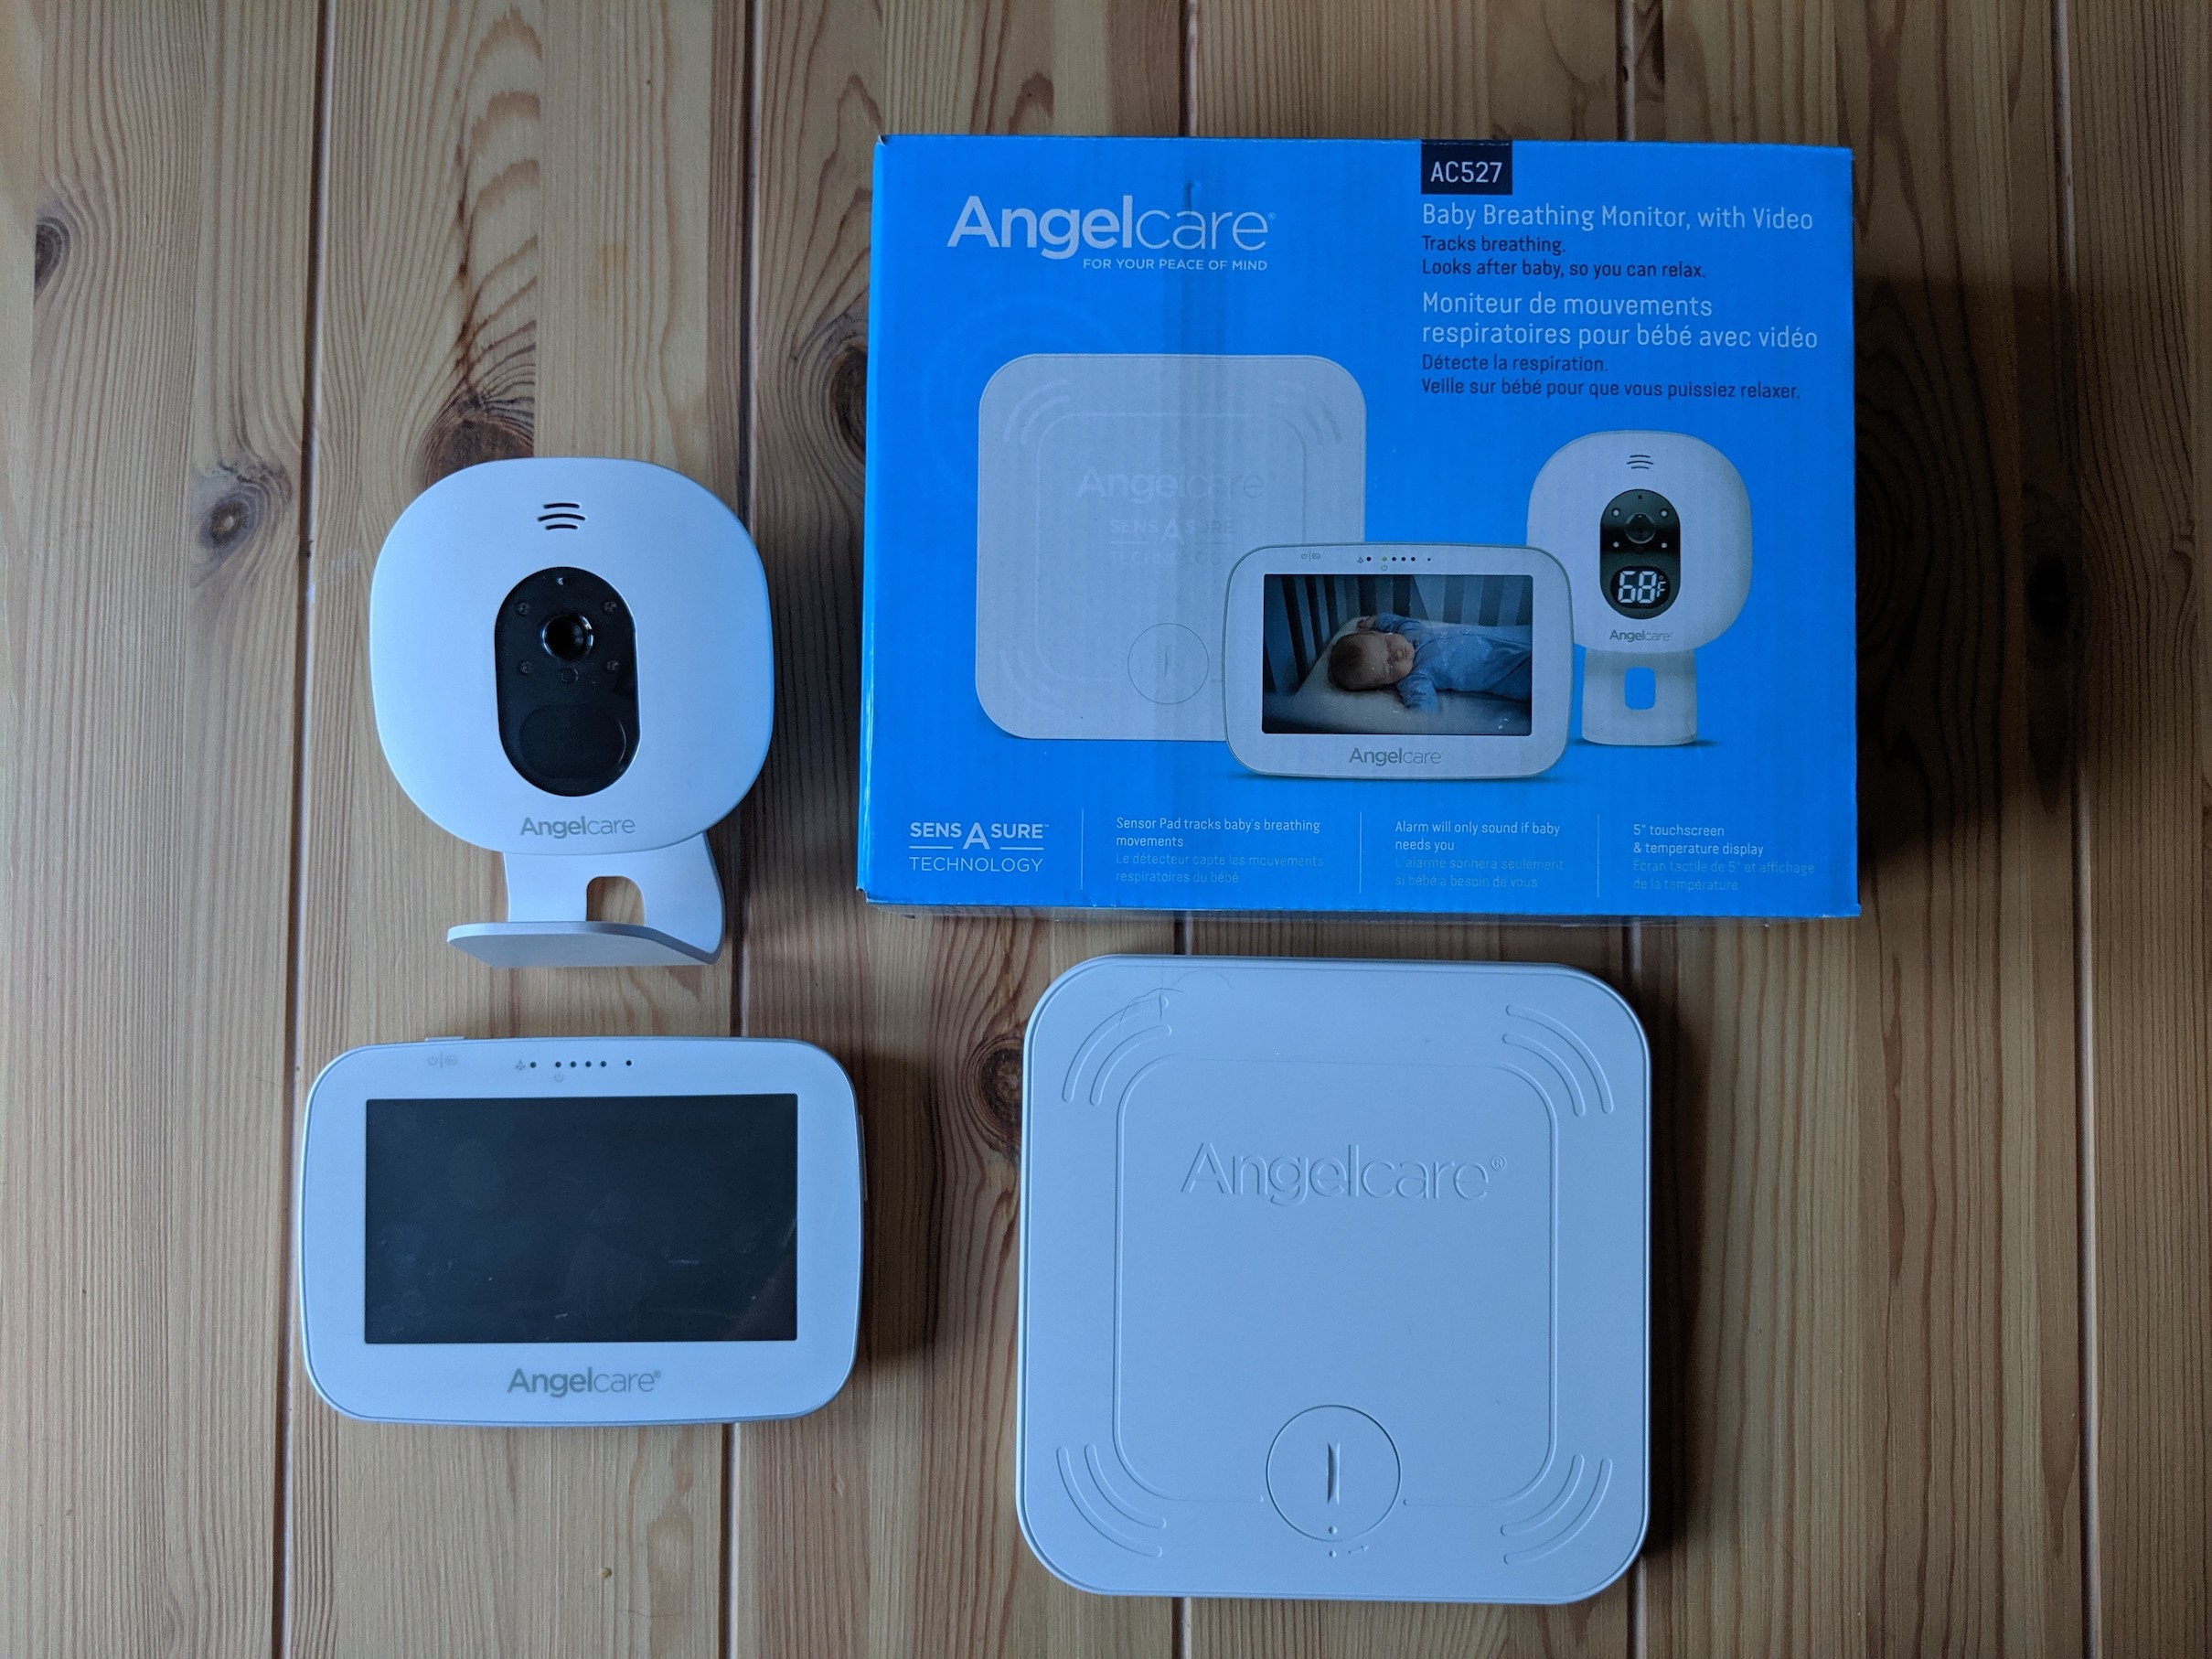 Angelcare Baby Breathing and Video Baby Monitor devices